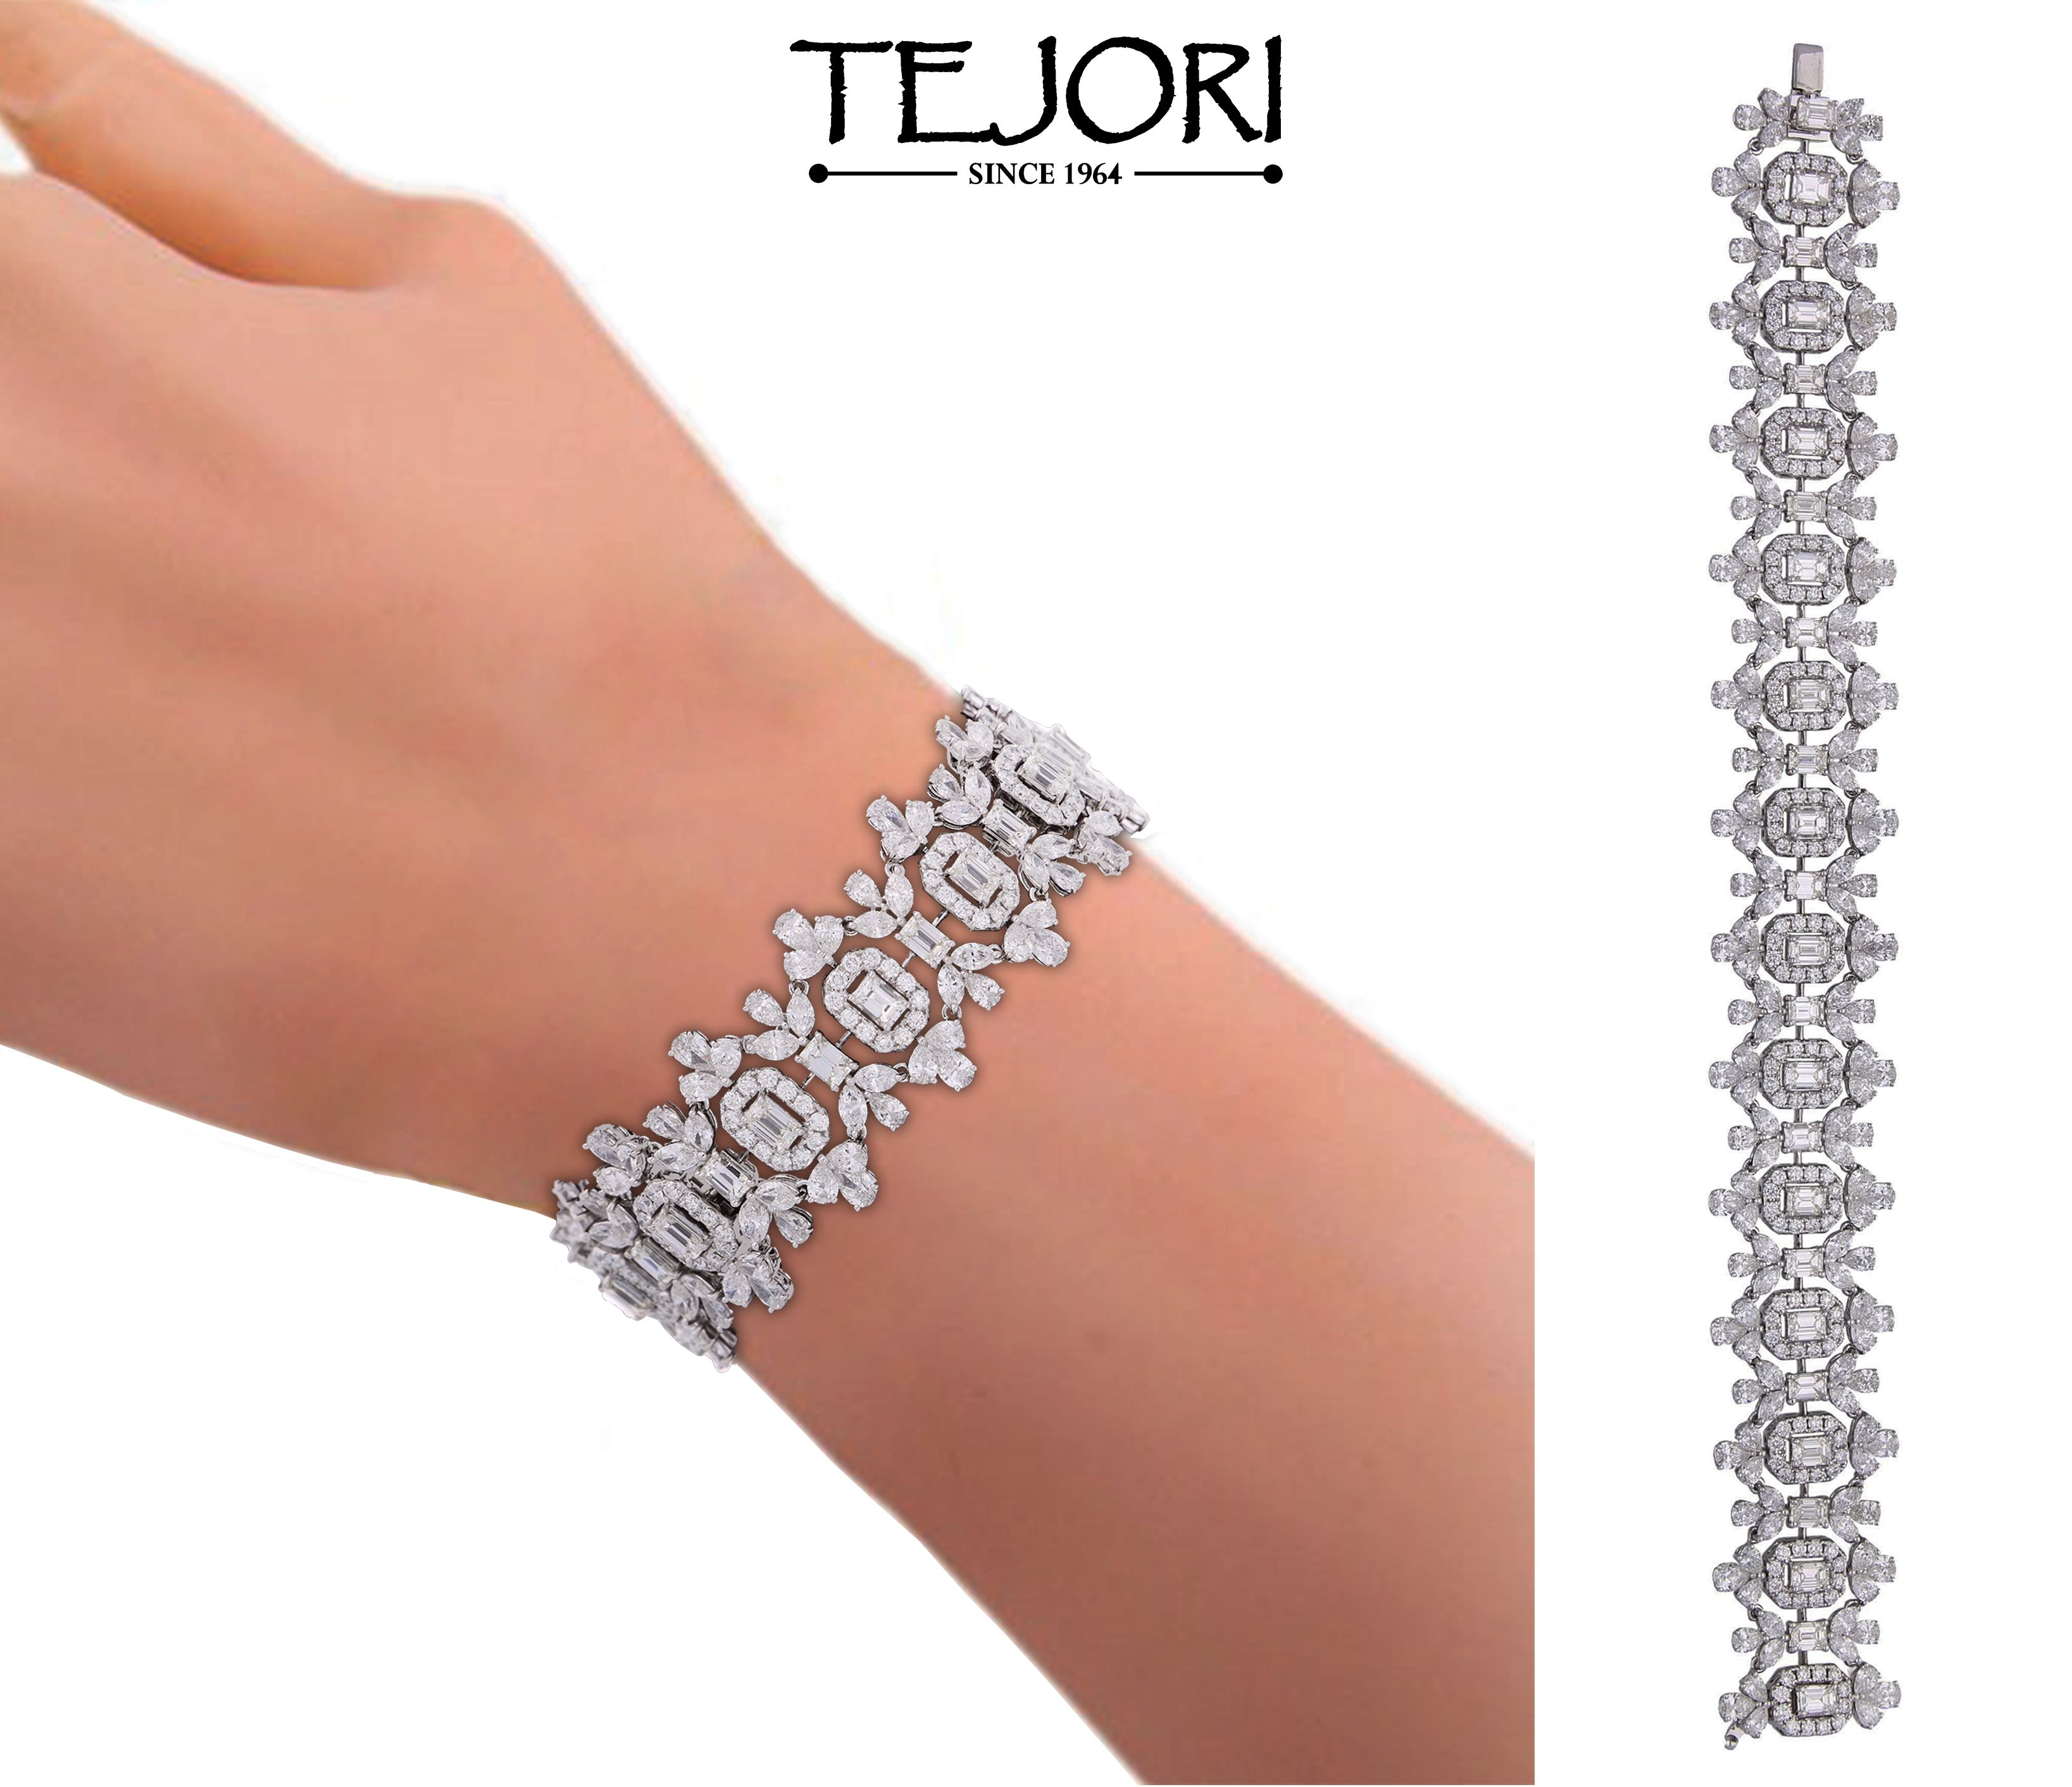 Bracelet made of white gold with round marquise and baguette